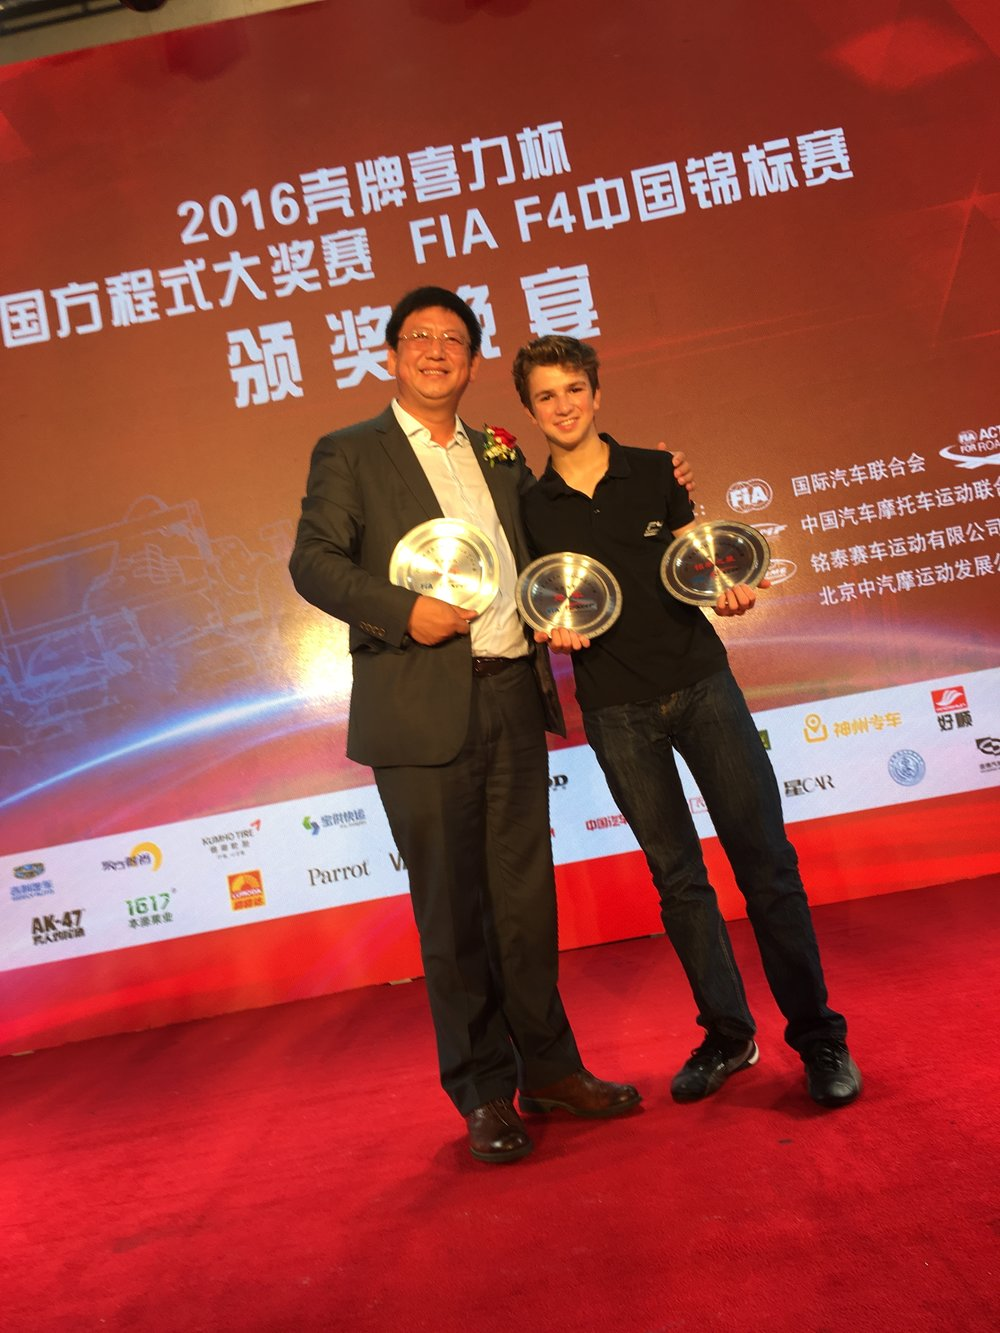 William Lee, Team Manager of the UMC Team and Bruno Carneiro during the MiTime Awards Night in Zhuhai, China